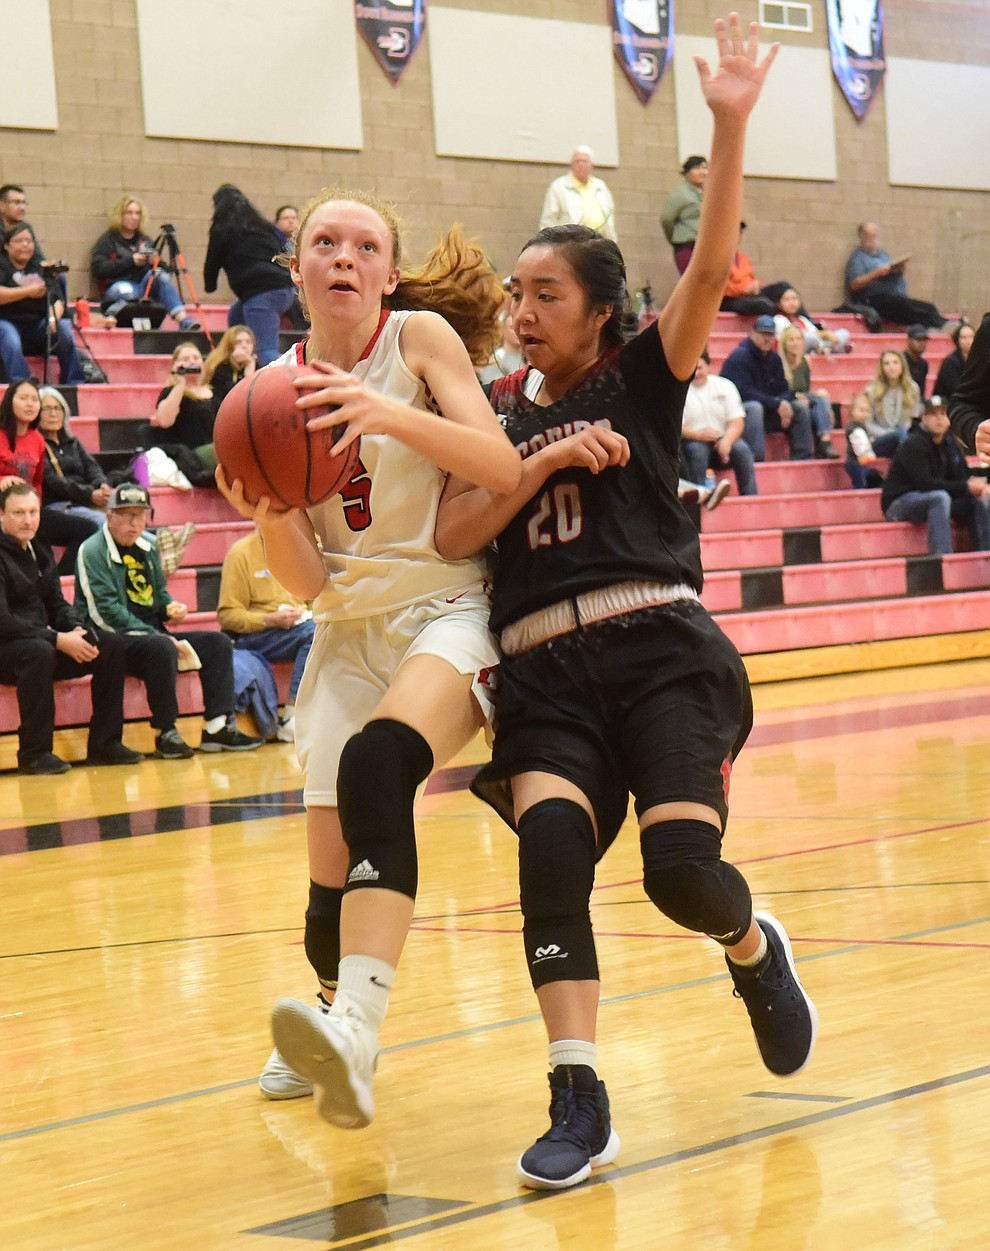 Bradshaw Mountain's Sierra Woolley drives to the hoop on a fast break as the Bears hosted Coconino in a doubleheader hoops matchup Saturday, Dec. 15, 2018 in Prescott Valley. (Les Stukenberg/Courier).